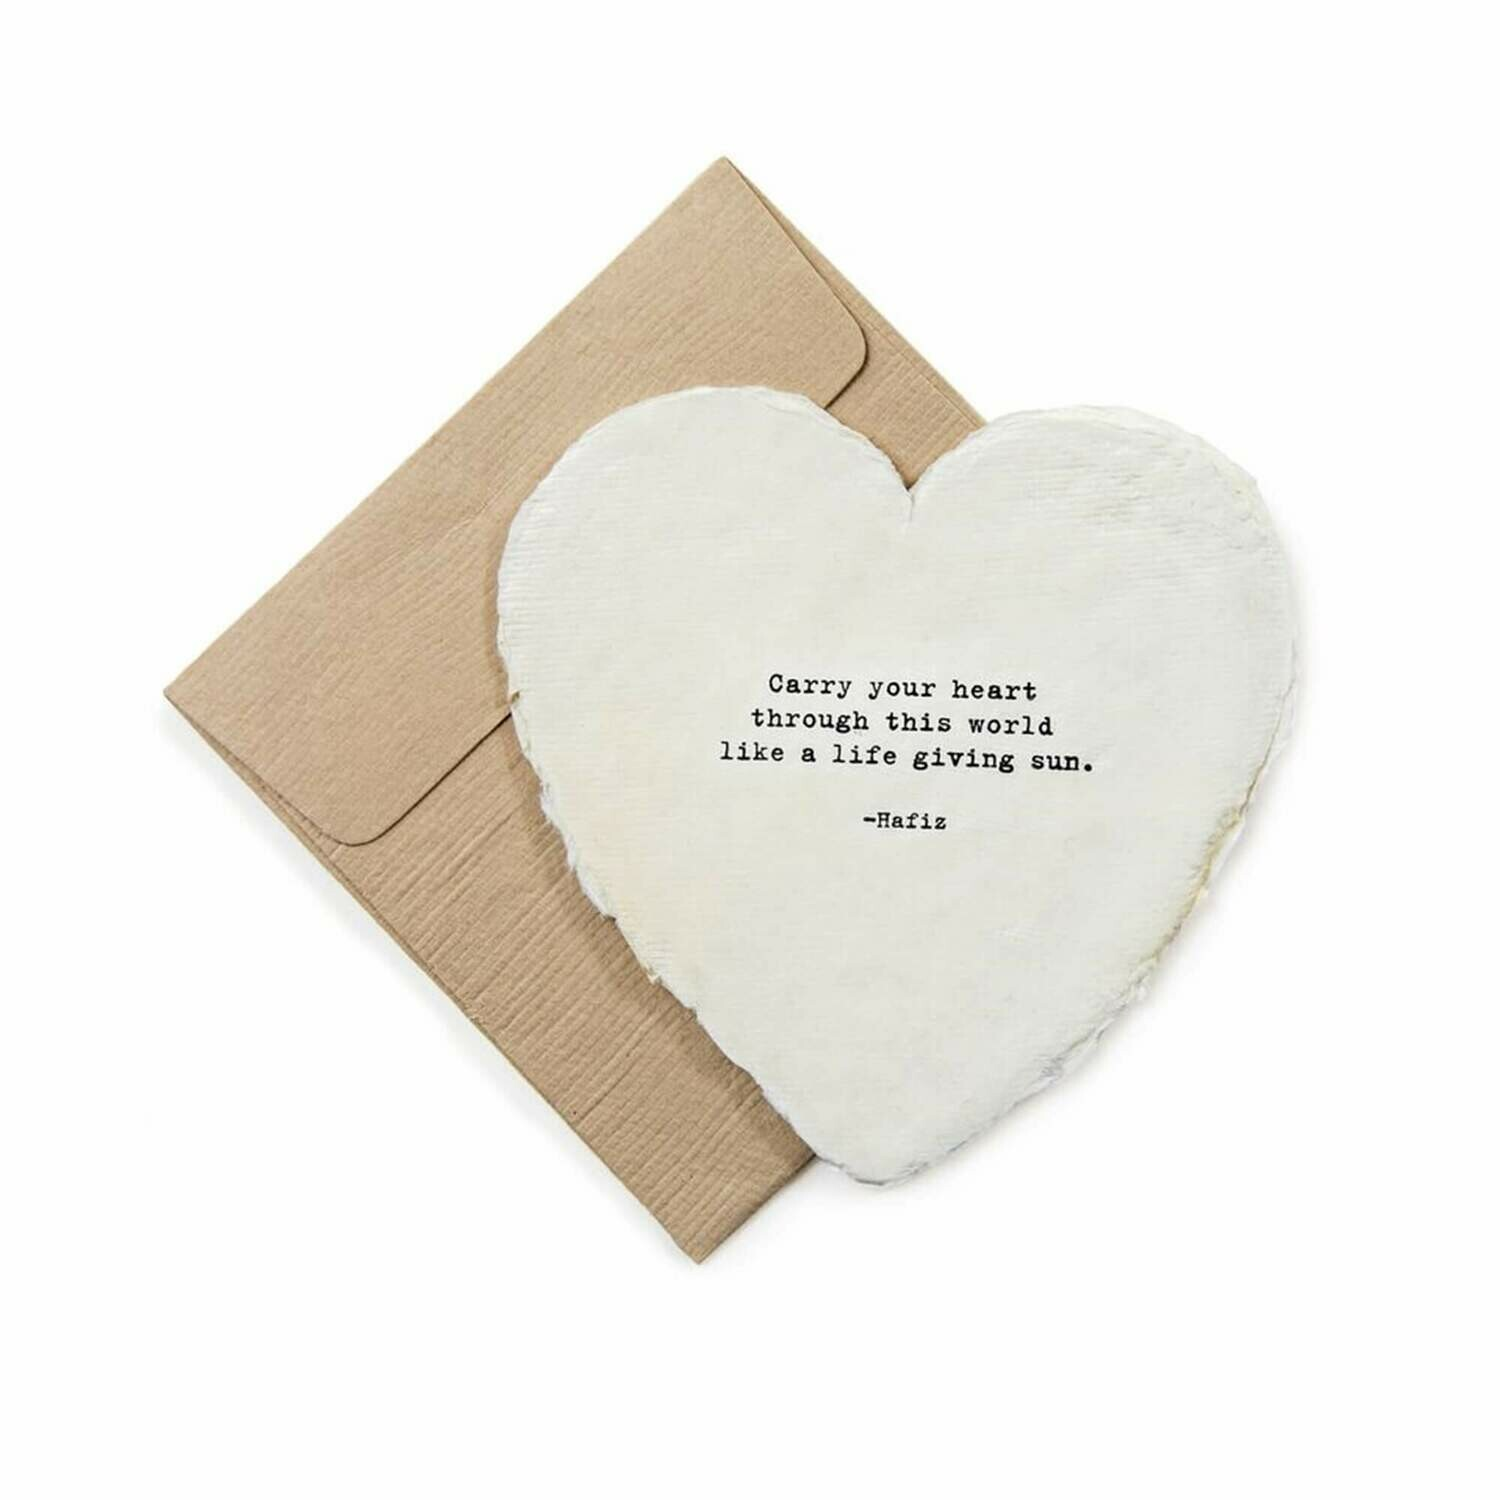 Mini Heart Shaped Card & Envelope-Carry your heart